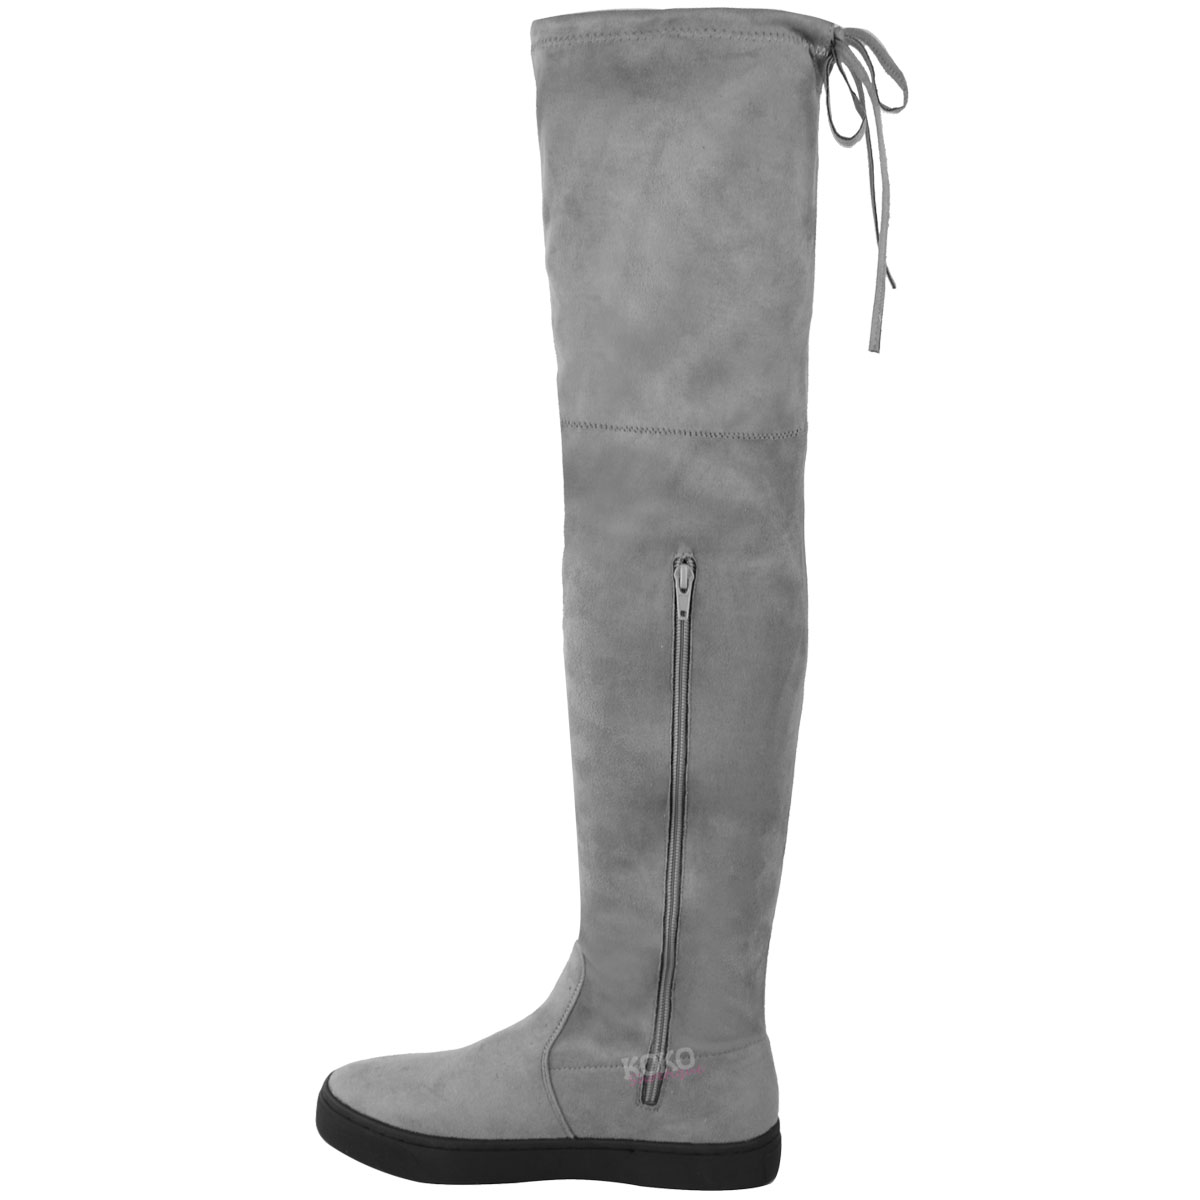 Womens Ladies Over The Knee Flat Thigh High Boots Low Heel Lace Up